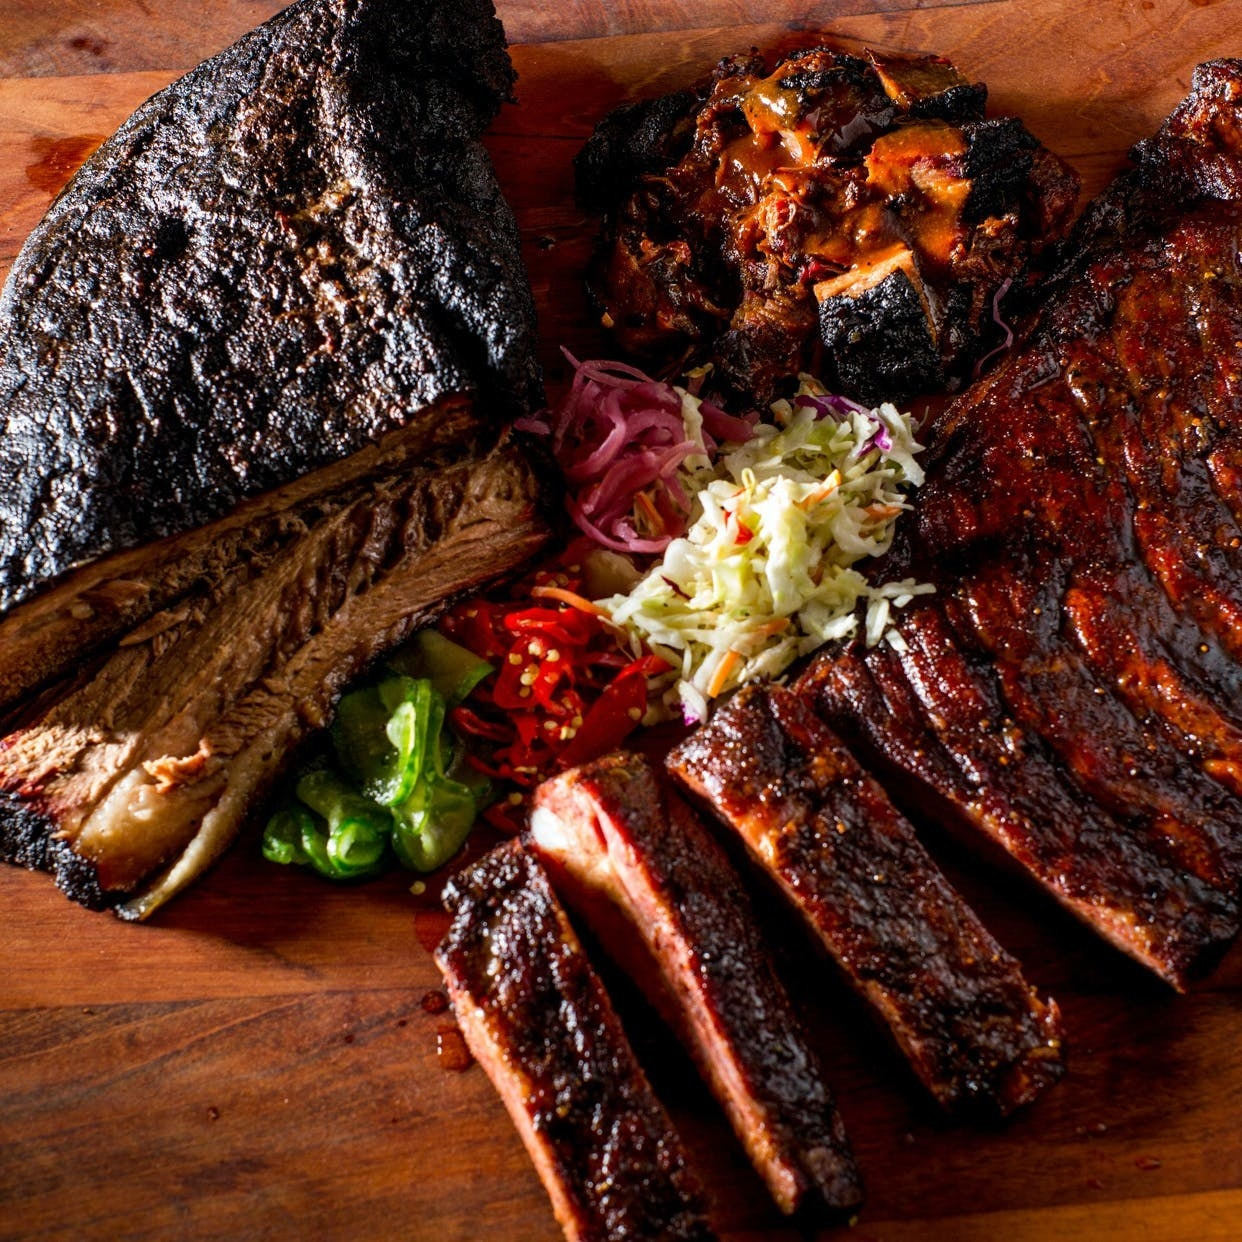 Ribs, brisket, burnt ends, coleslaw, onions, and peppers from a Mighty Quinn's sampler pack.